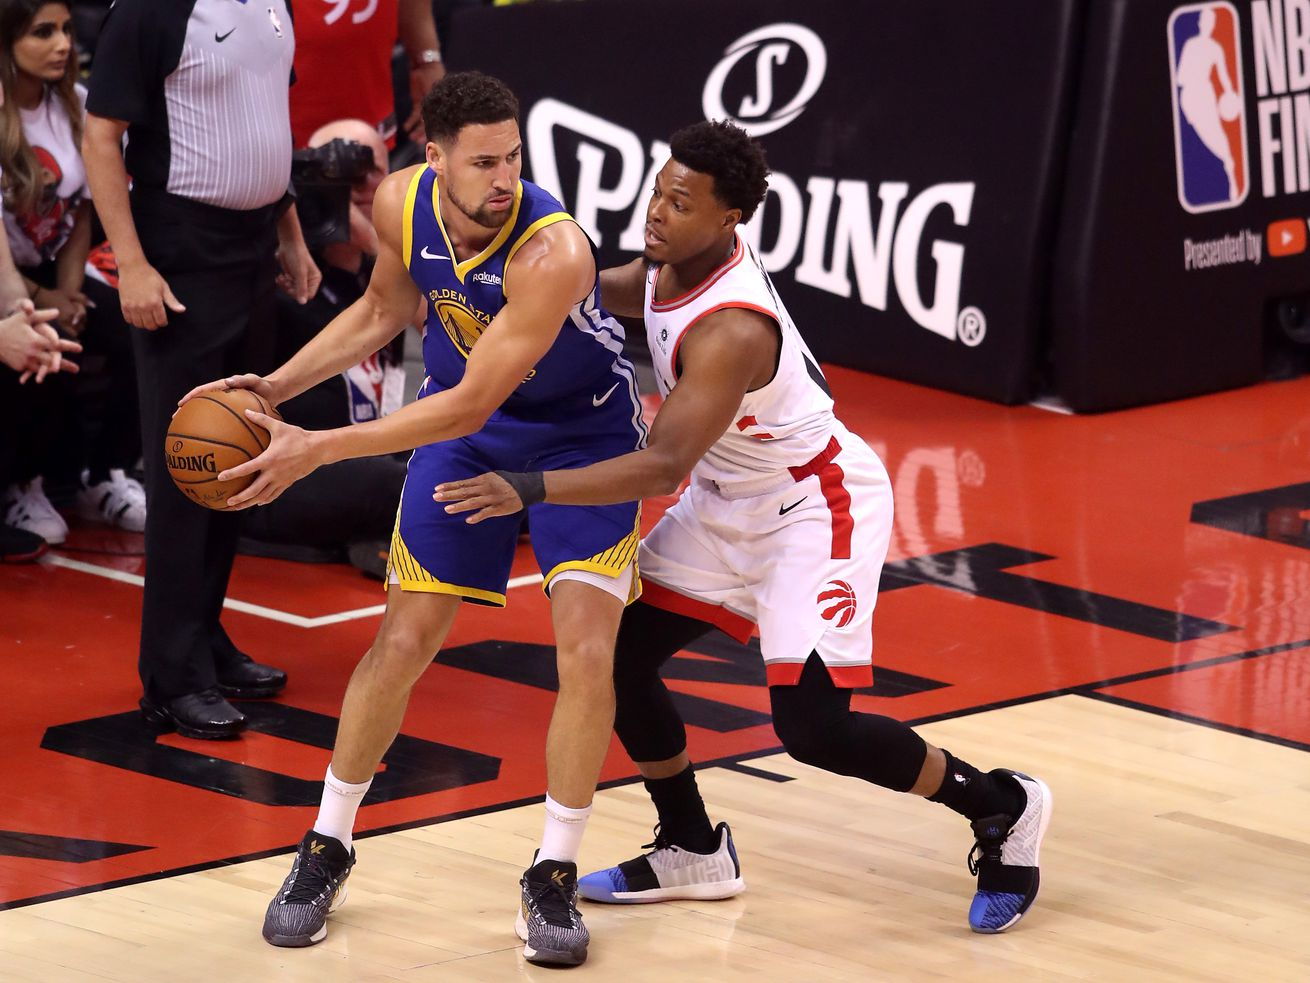 f2ab96766ef Titus and Tate can't help themselves, so they briefly discuss Game 5 of the  NBA Finals, including Mike Brey's courtside seat, unjust Kyle Lowry hate,  ...